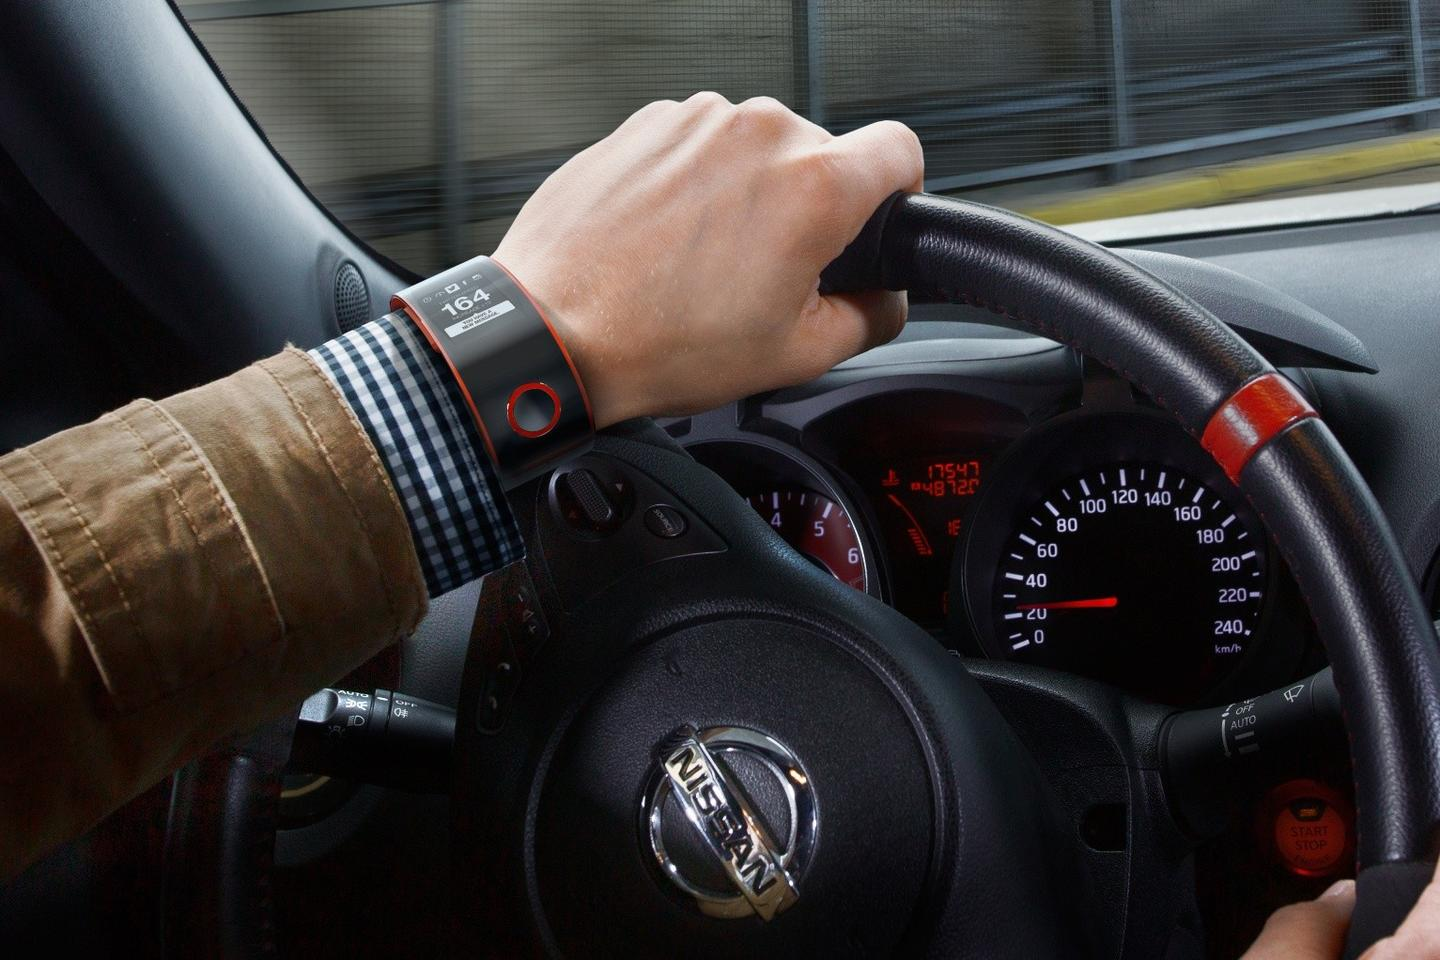 Nissan says the watch will be the first in an ongoing line of wearable devices for drivers